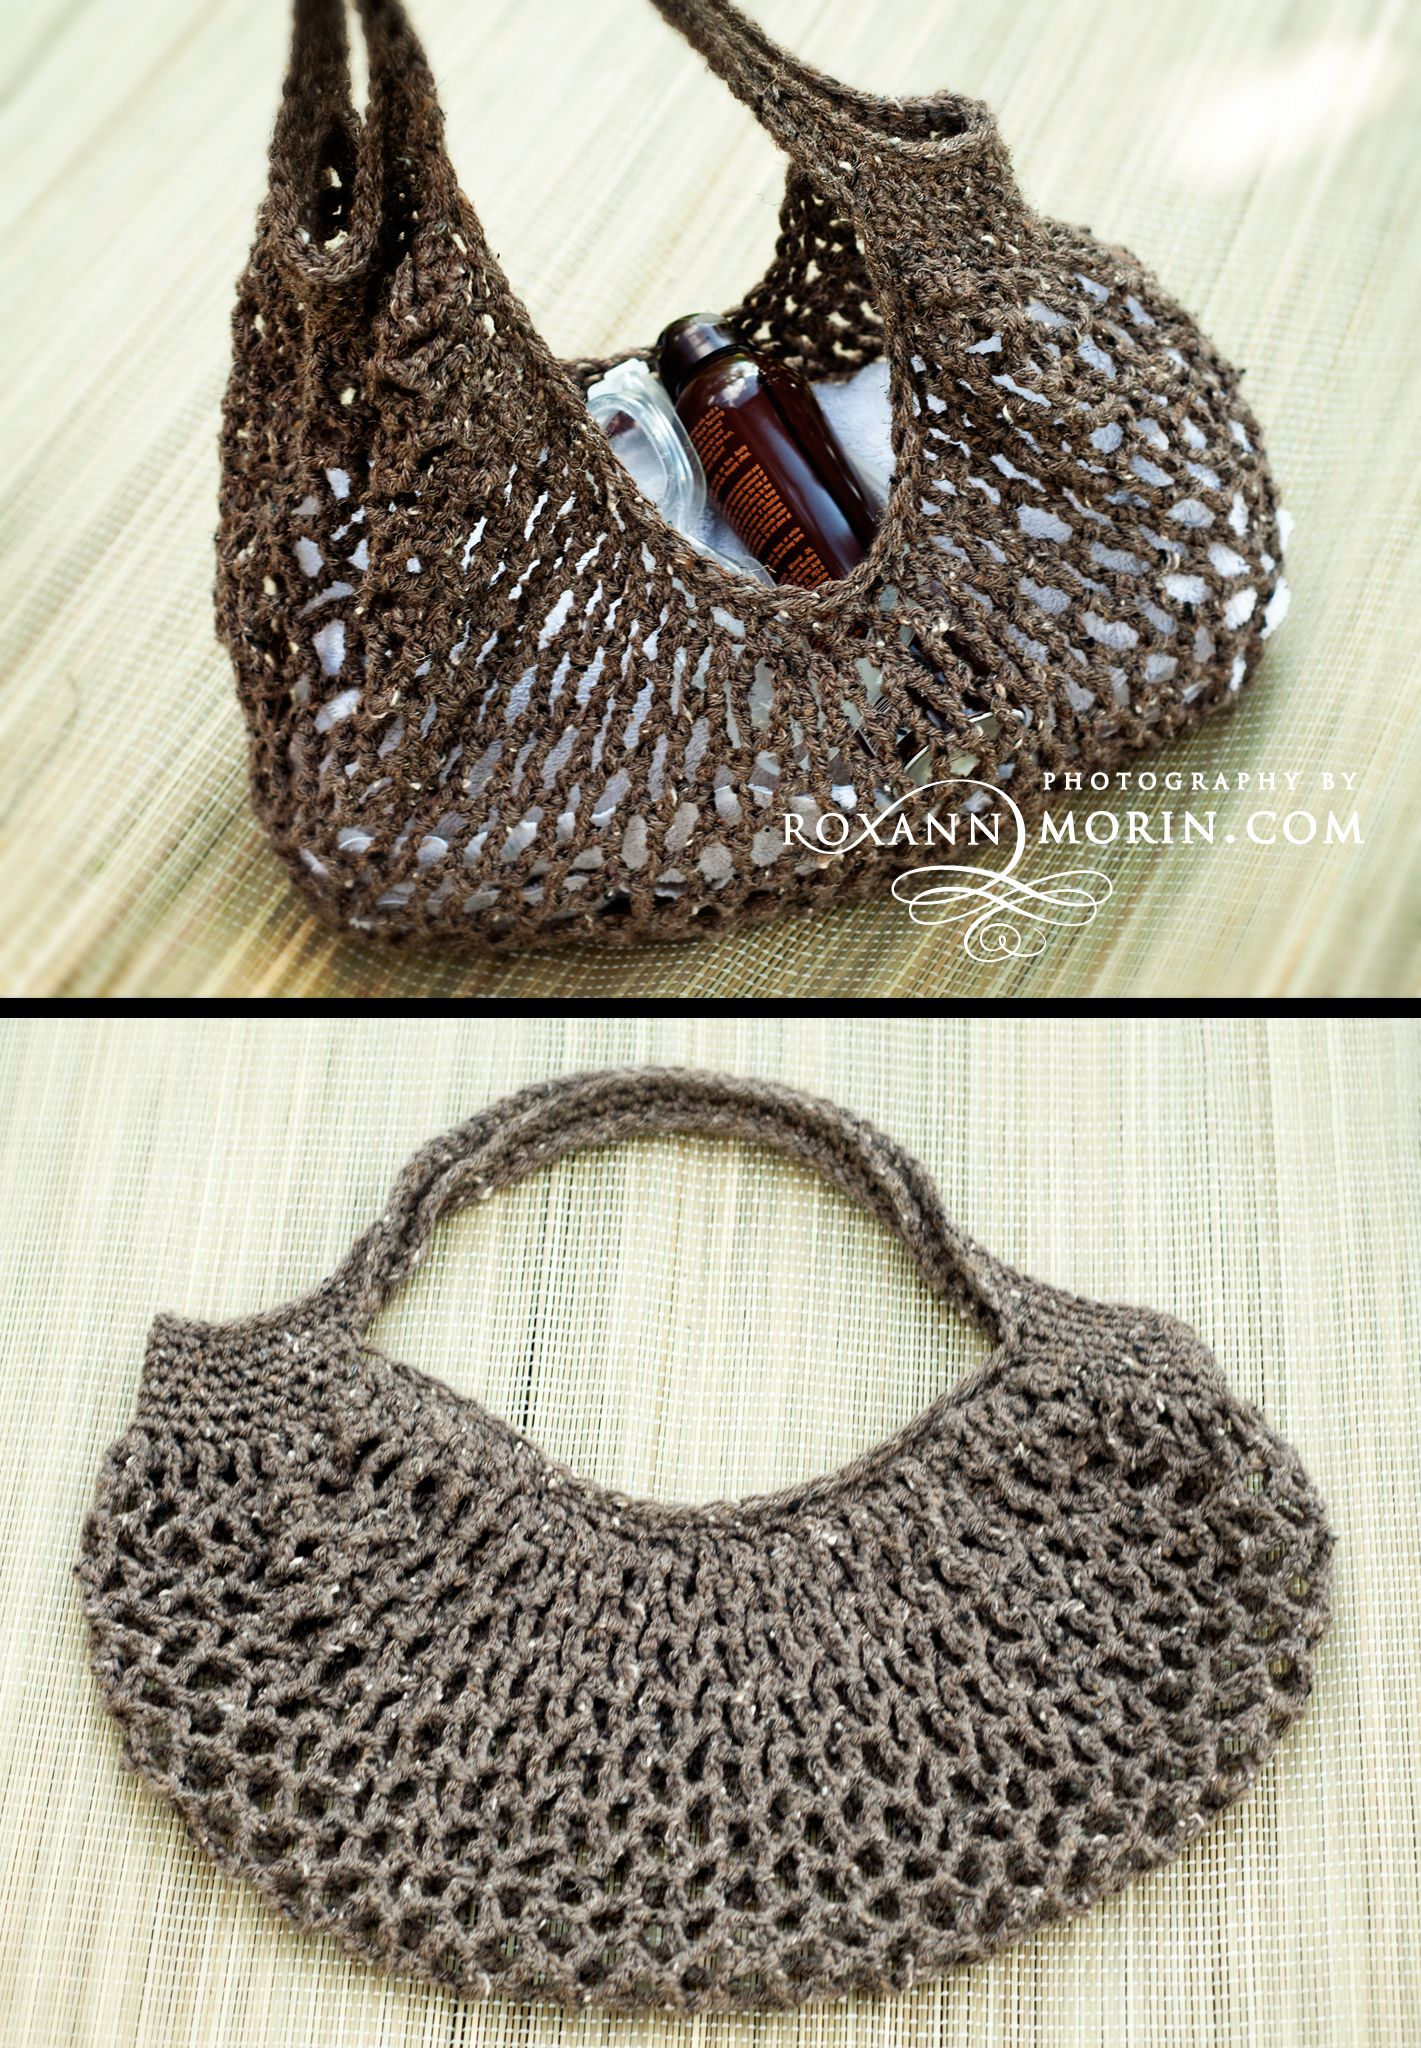 Eclecticcrochets pool bag free crochet bag crocheted bags and eclecticcrochets pool bag crochet hobo bagfree bankloansurffo Gallery